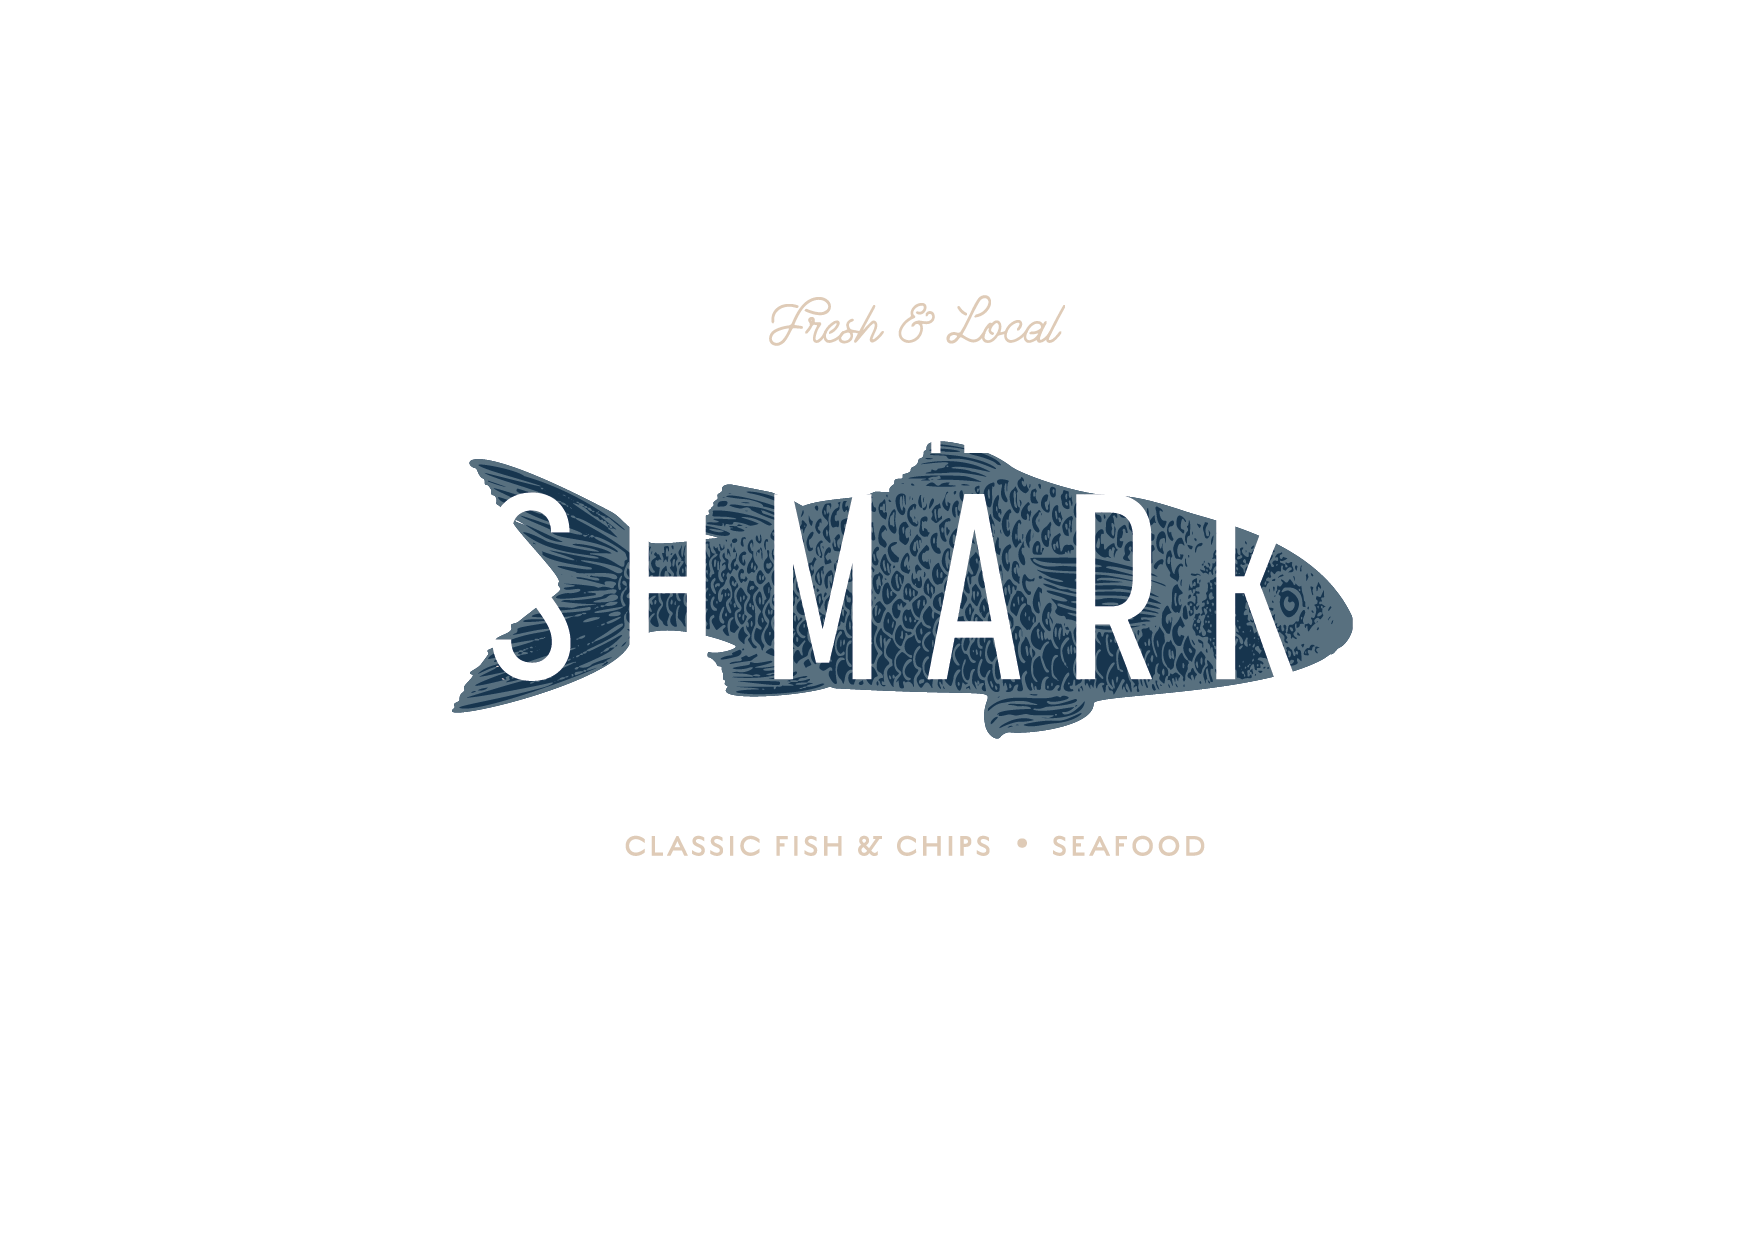 SoulFishmarket_Reversed-01.png